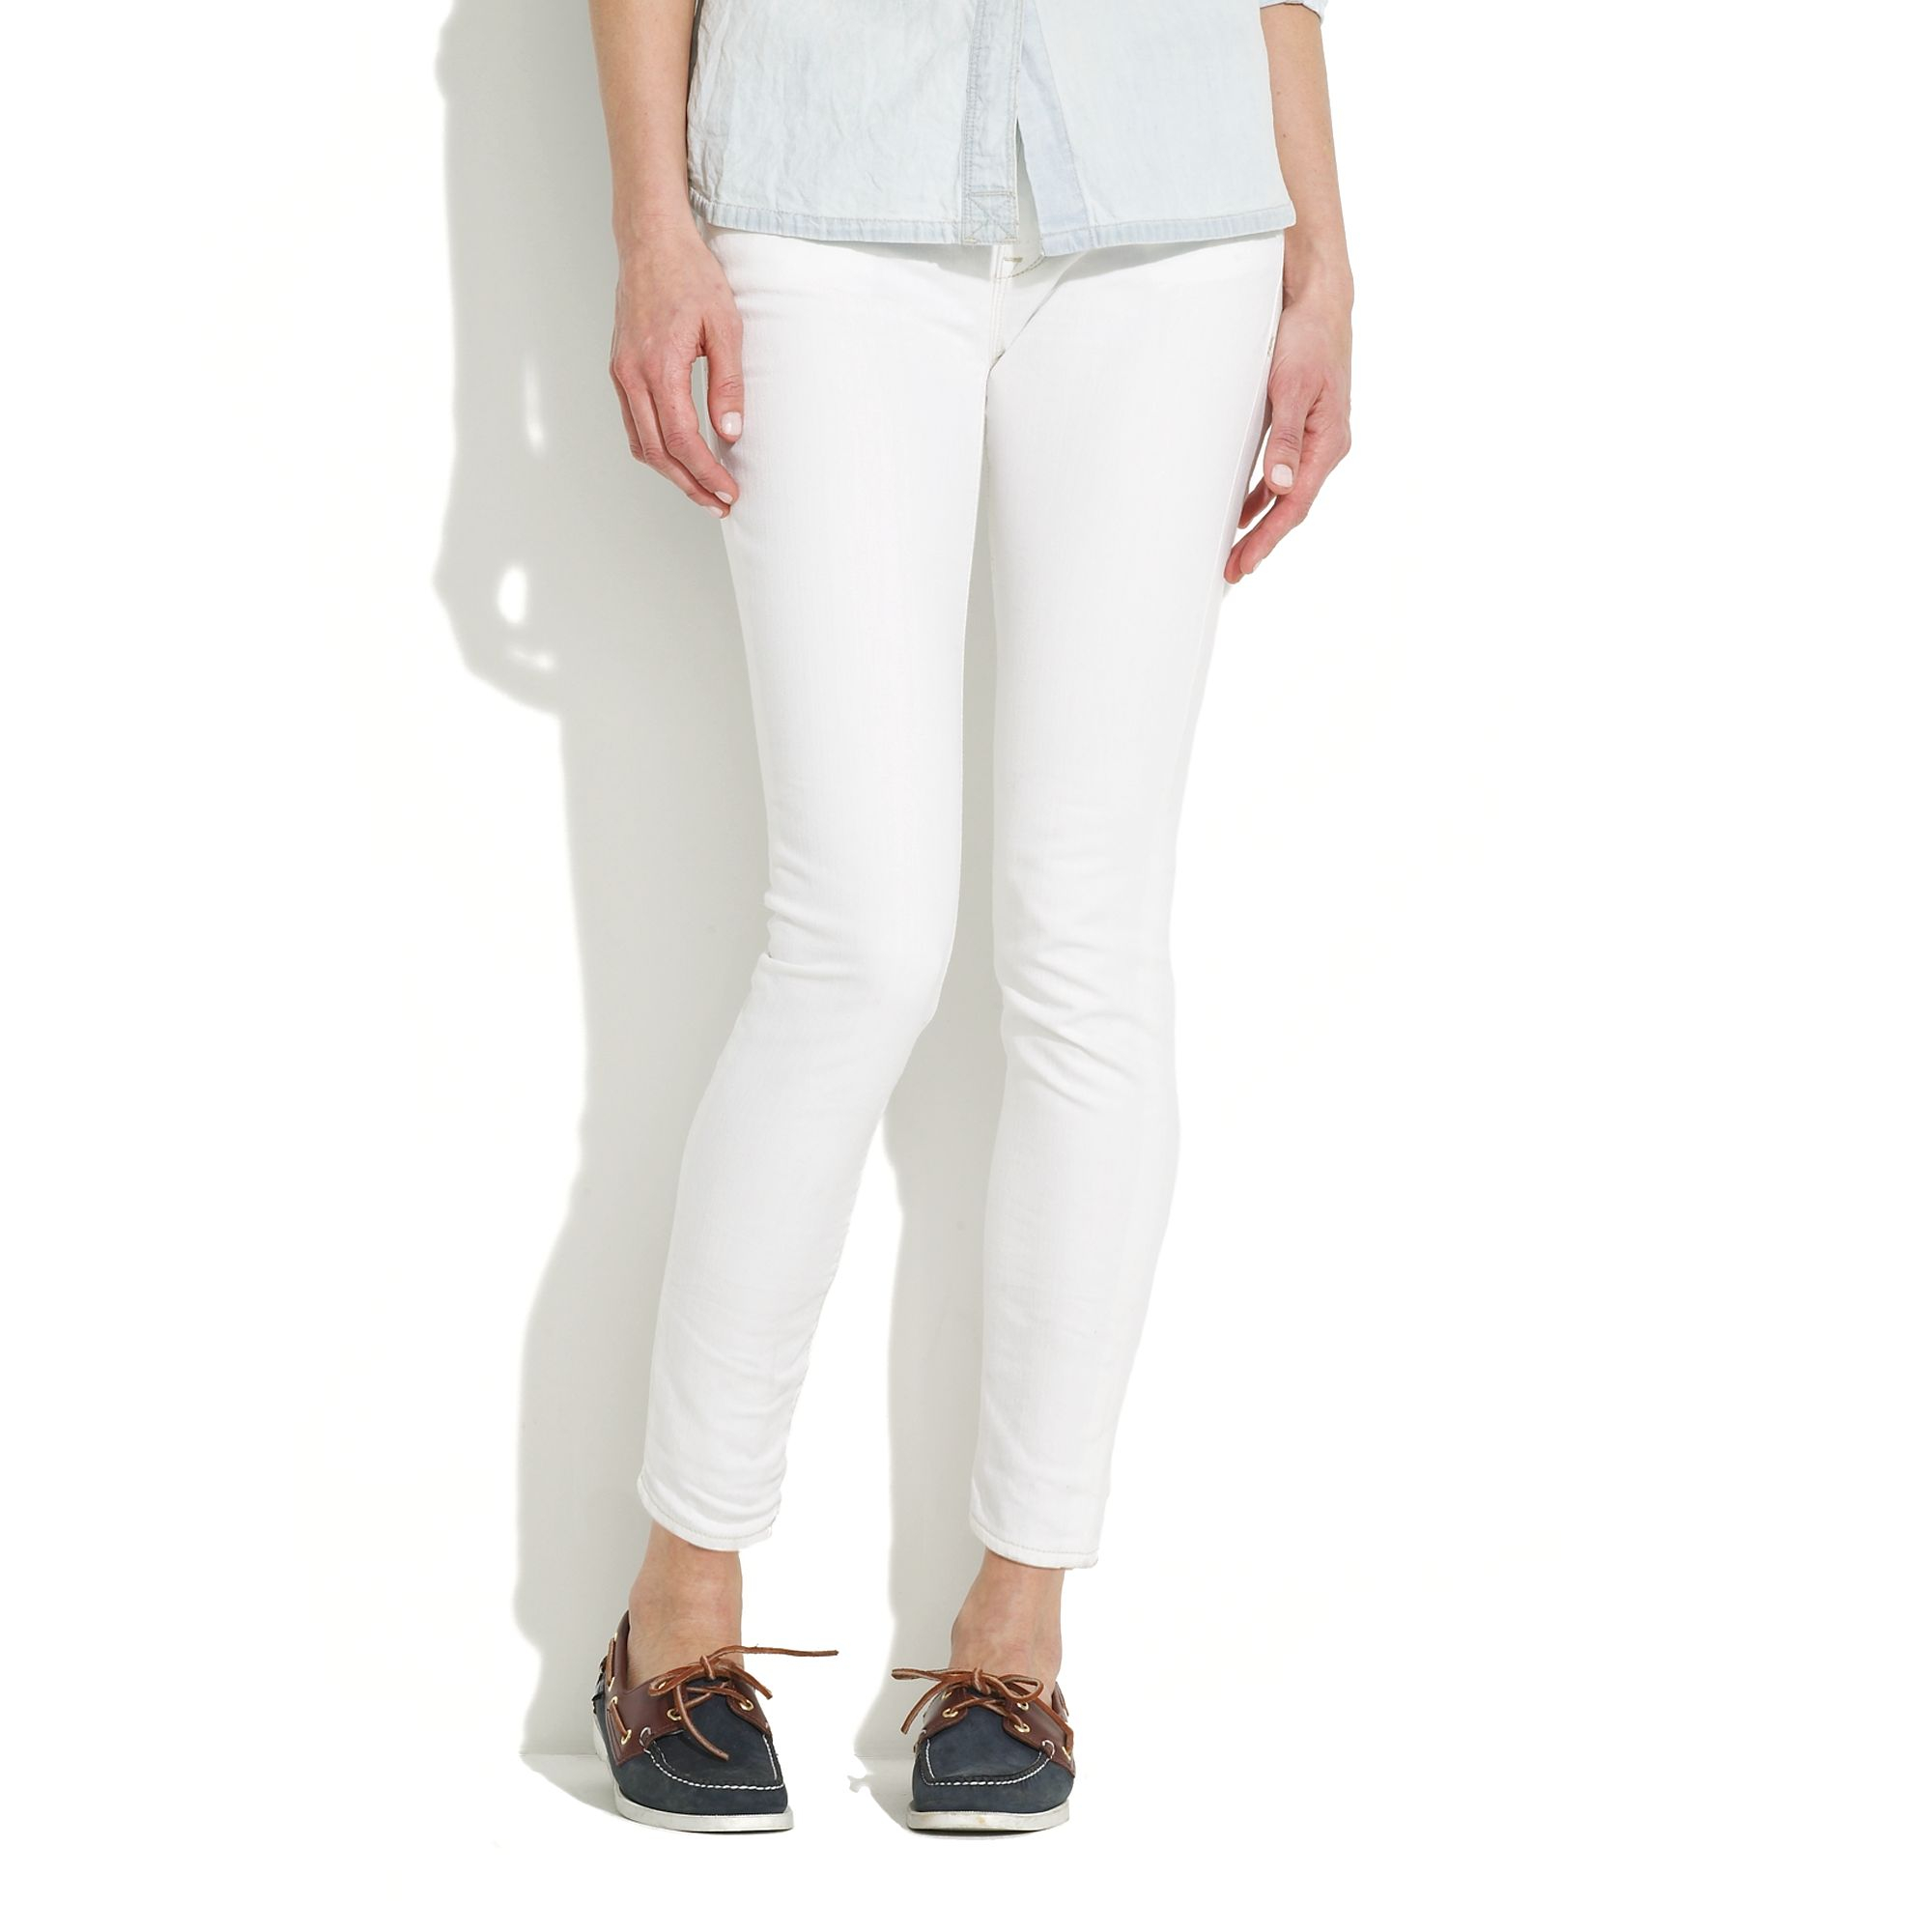 b12418ecccd Madewell Skinny Ankle Jeans In White Wash in White - Lyst